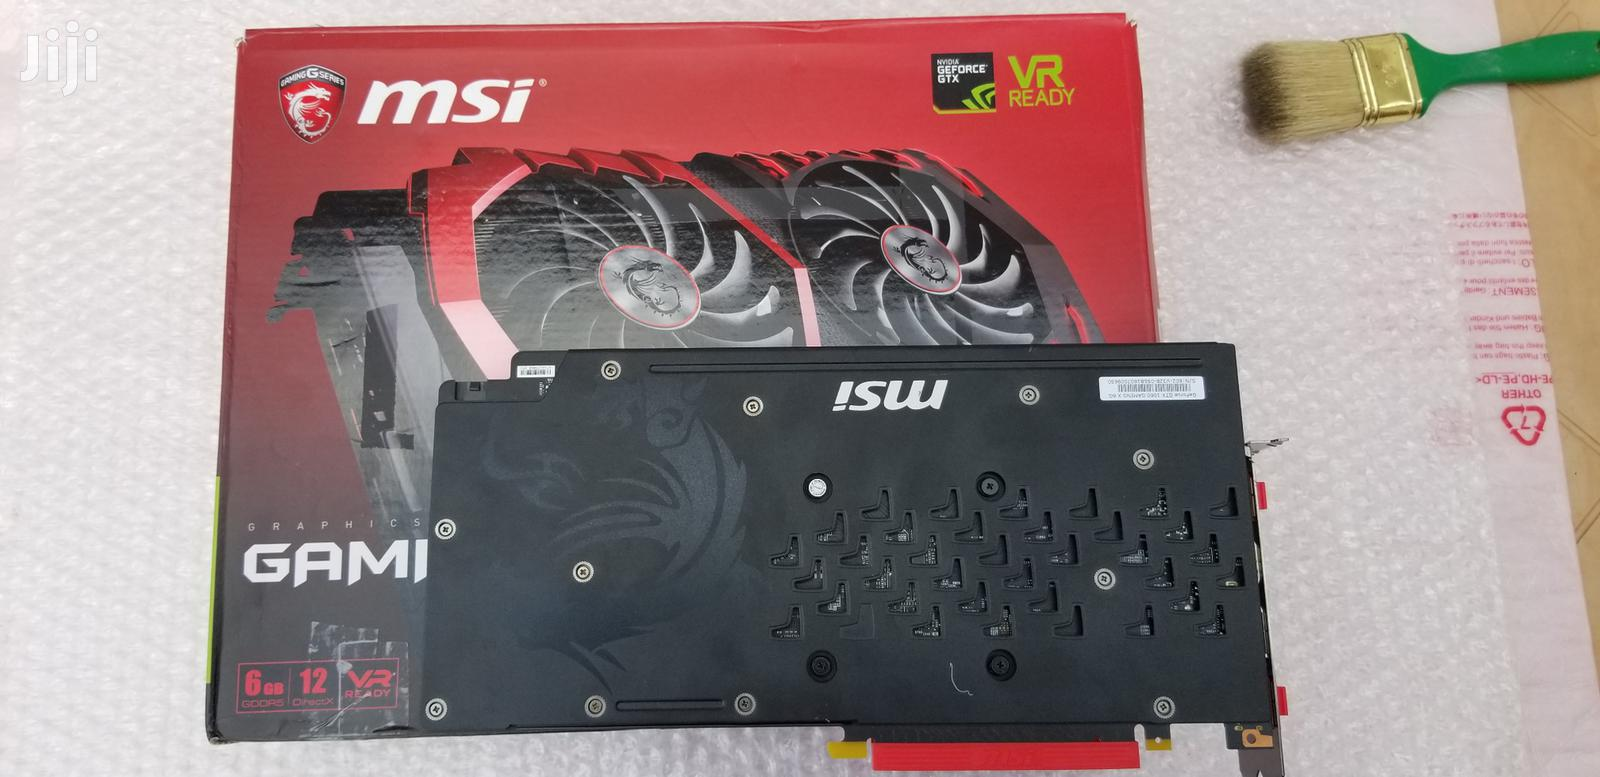 Archive: Msi Gtx 1060 6Gb Graphic Card